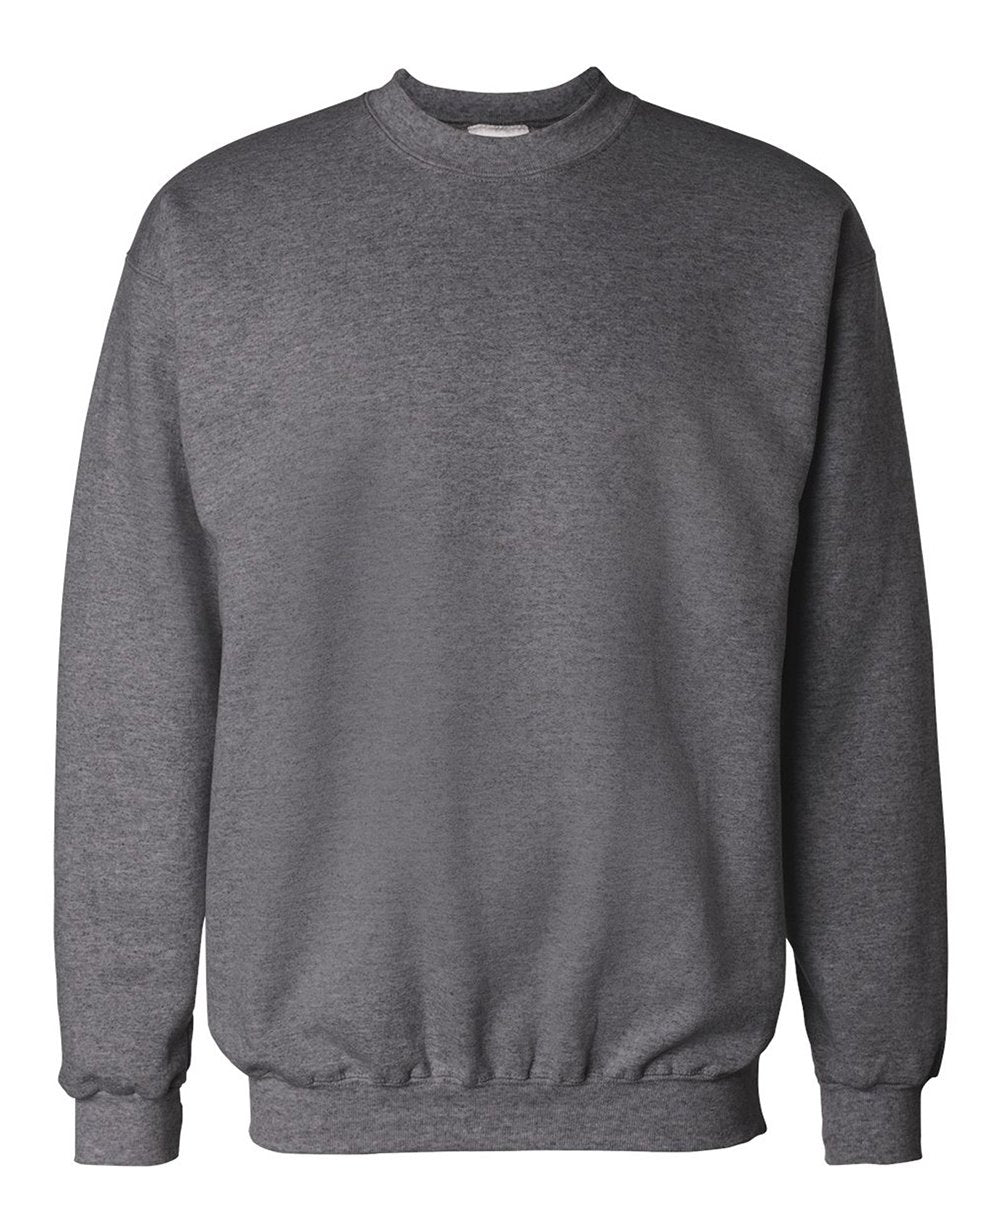 Sweater in Charcoal Heather